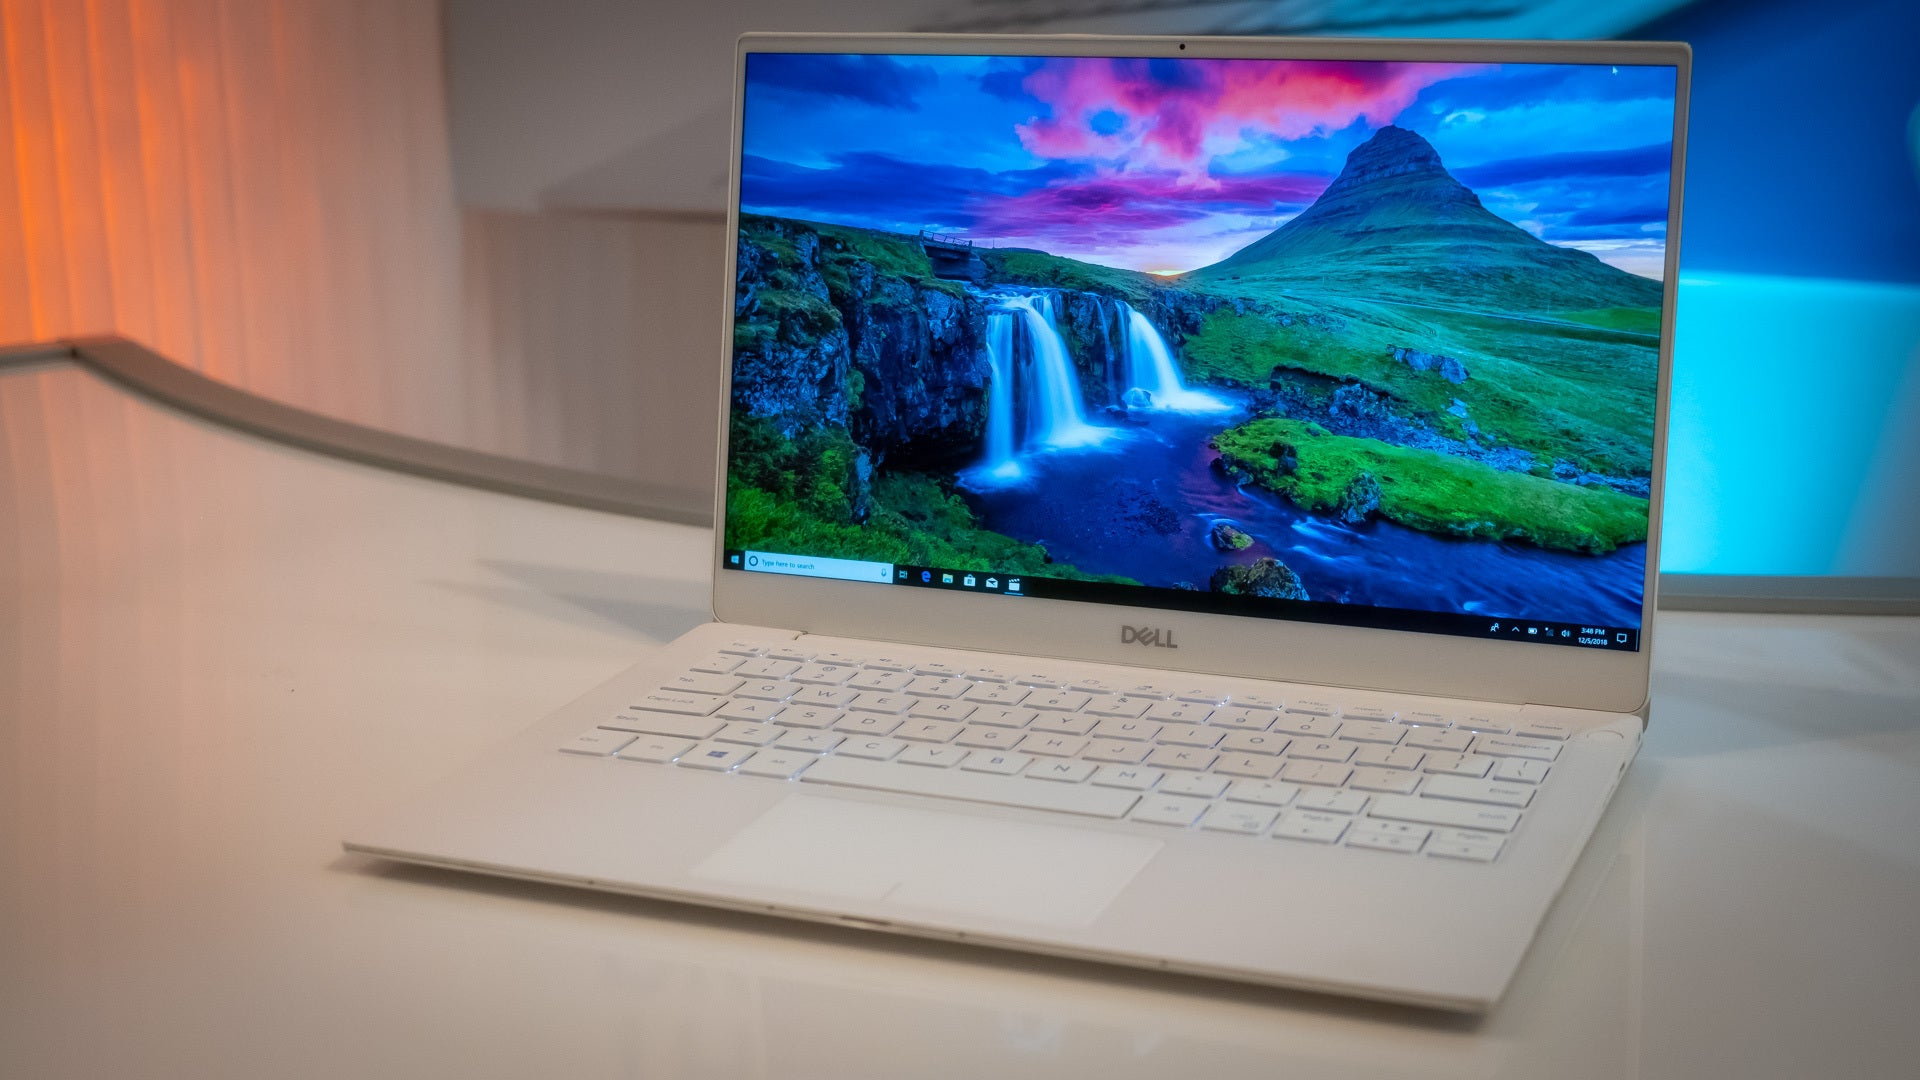 Hands on: Dell's XPS 13 finally puts the camera in the right